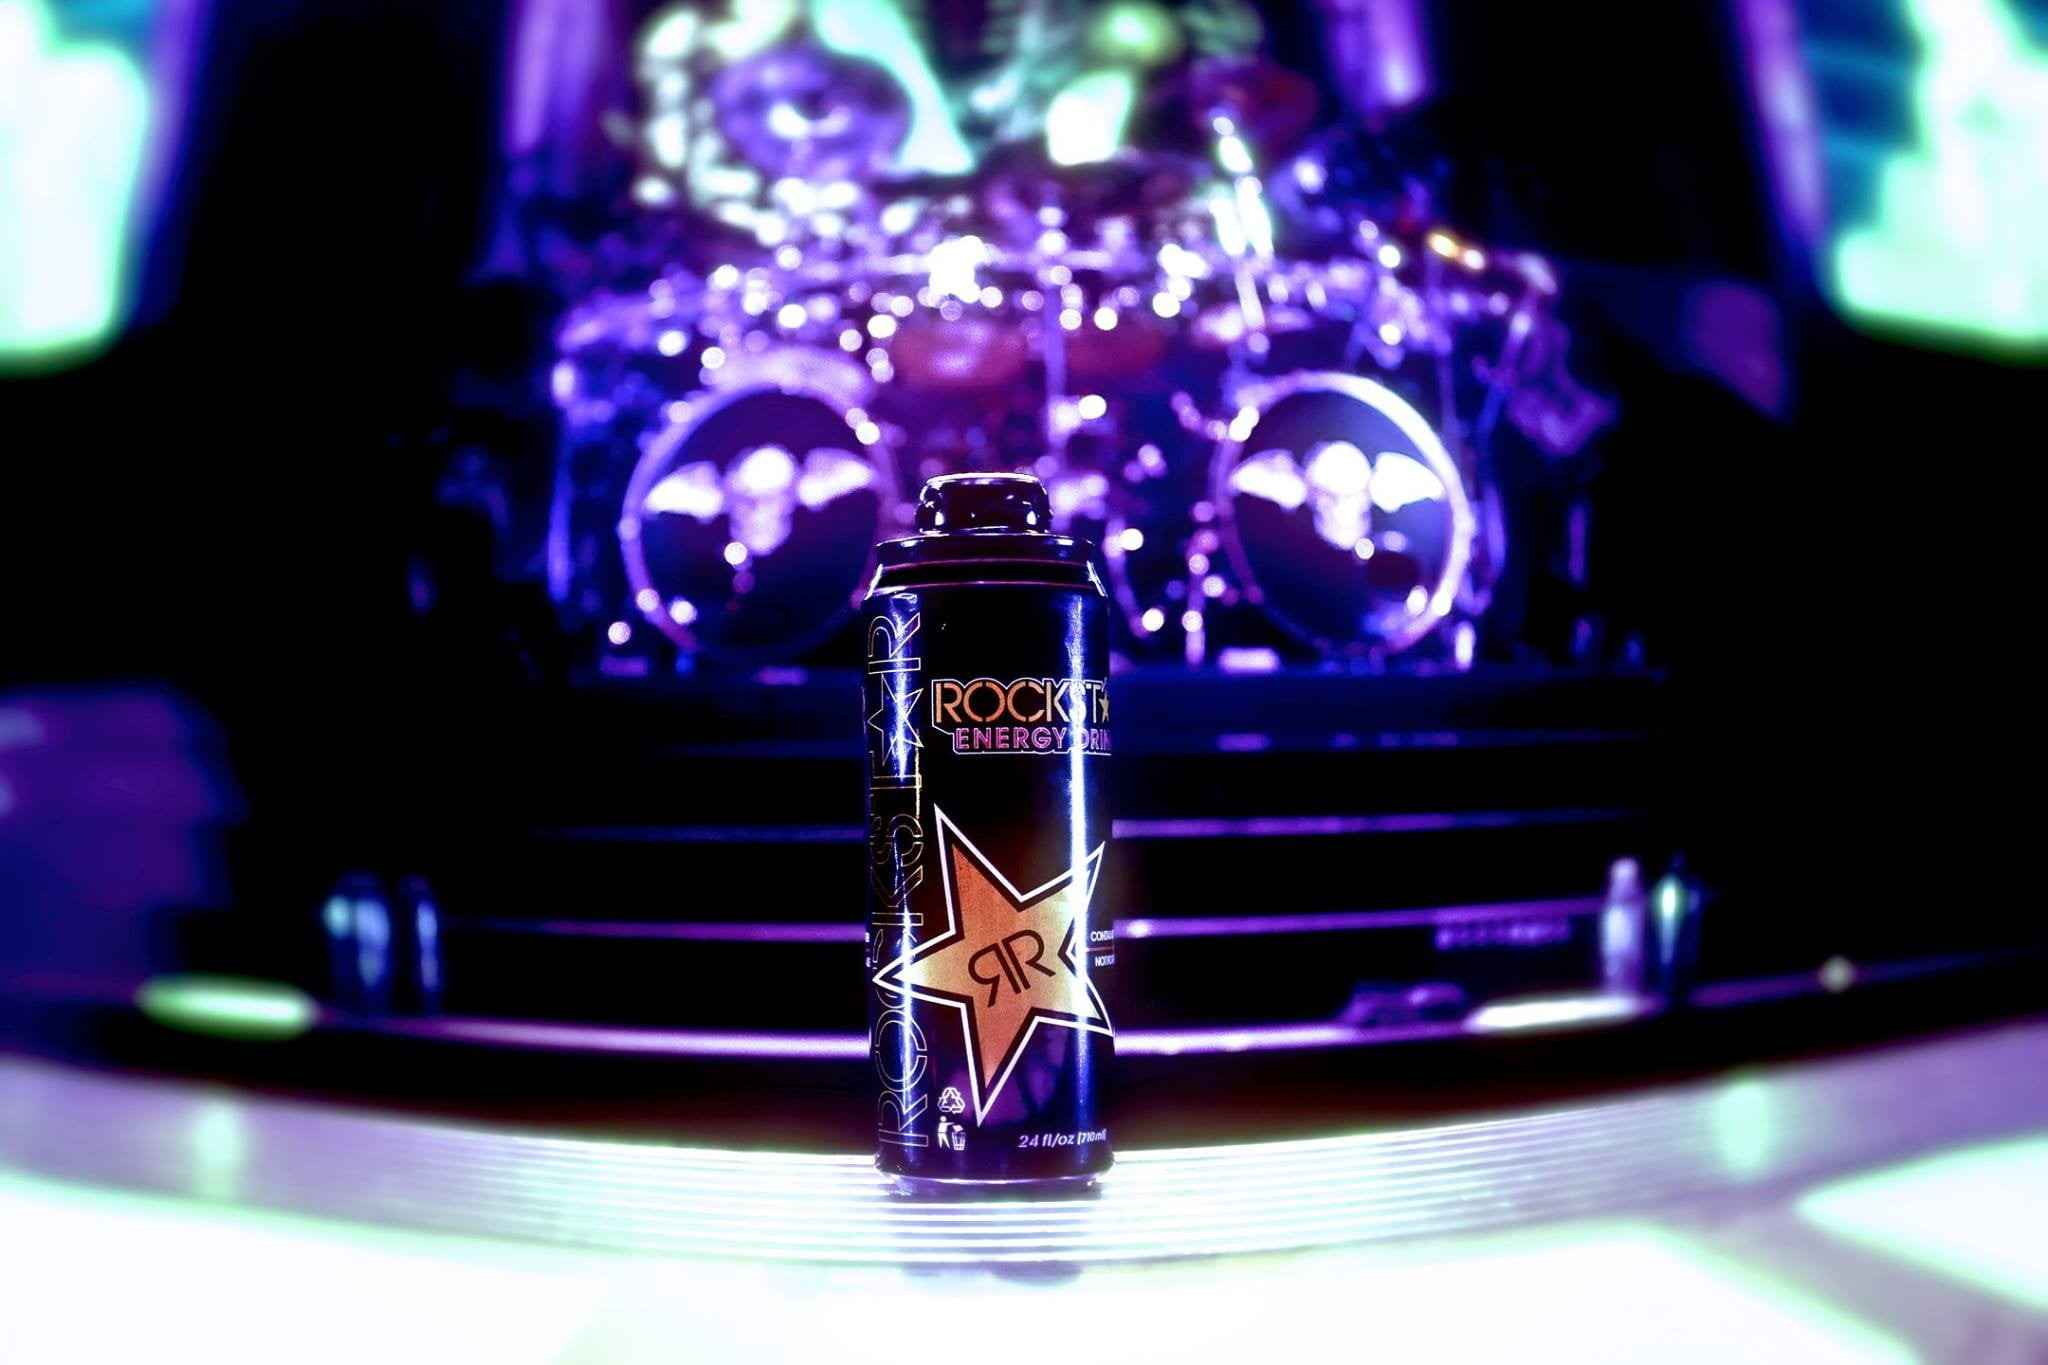 Res: 2048x1365, Rockstar Energy Drink can HD wallpaper